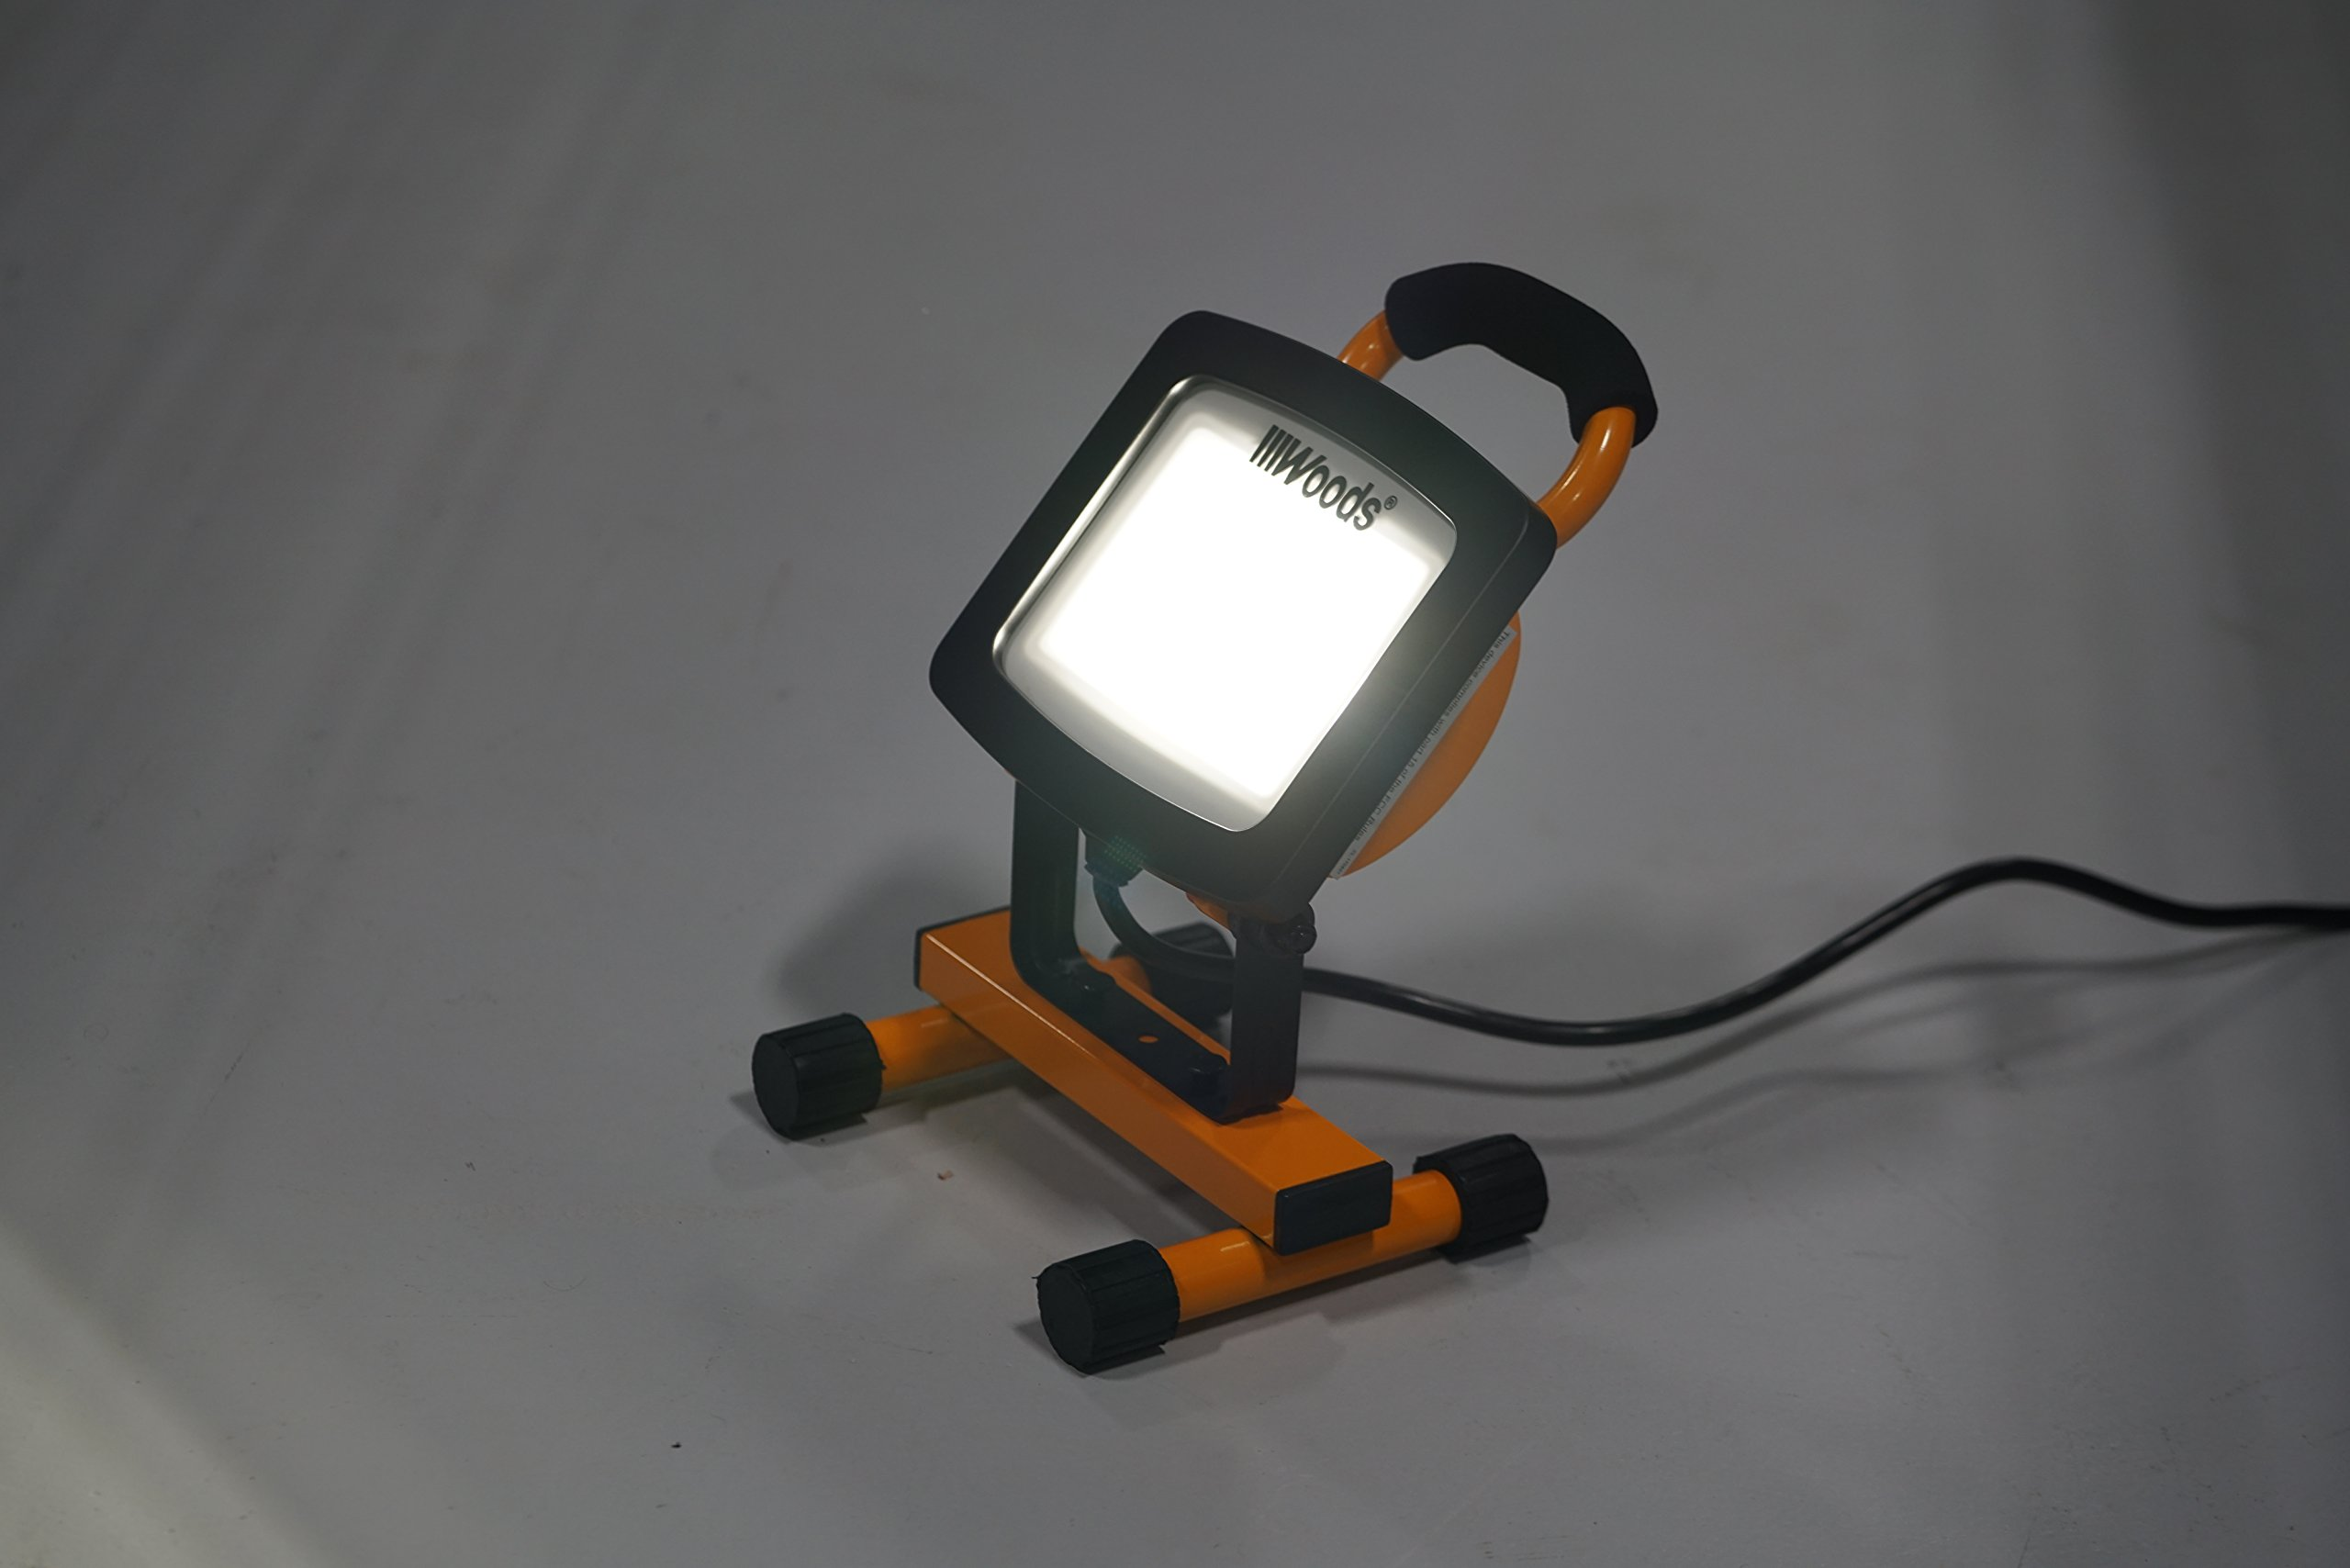 Woods WL40024 Portable LED Work Light with Steel H, H-Stand, Orange/Black